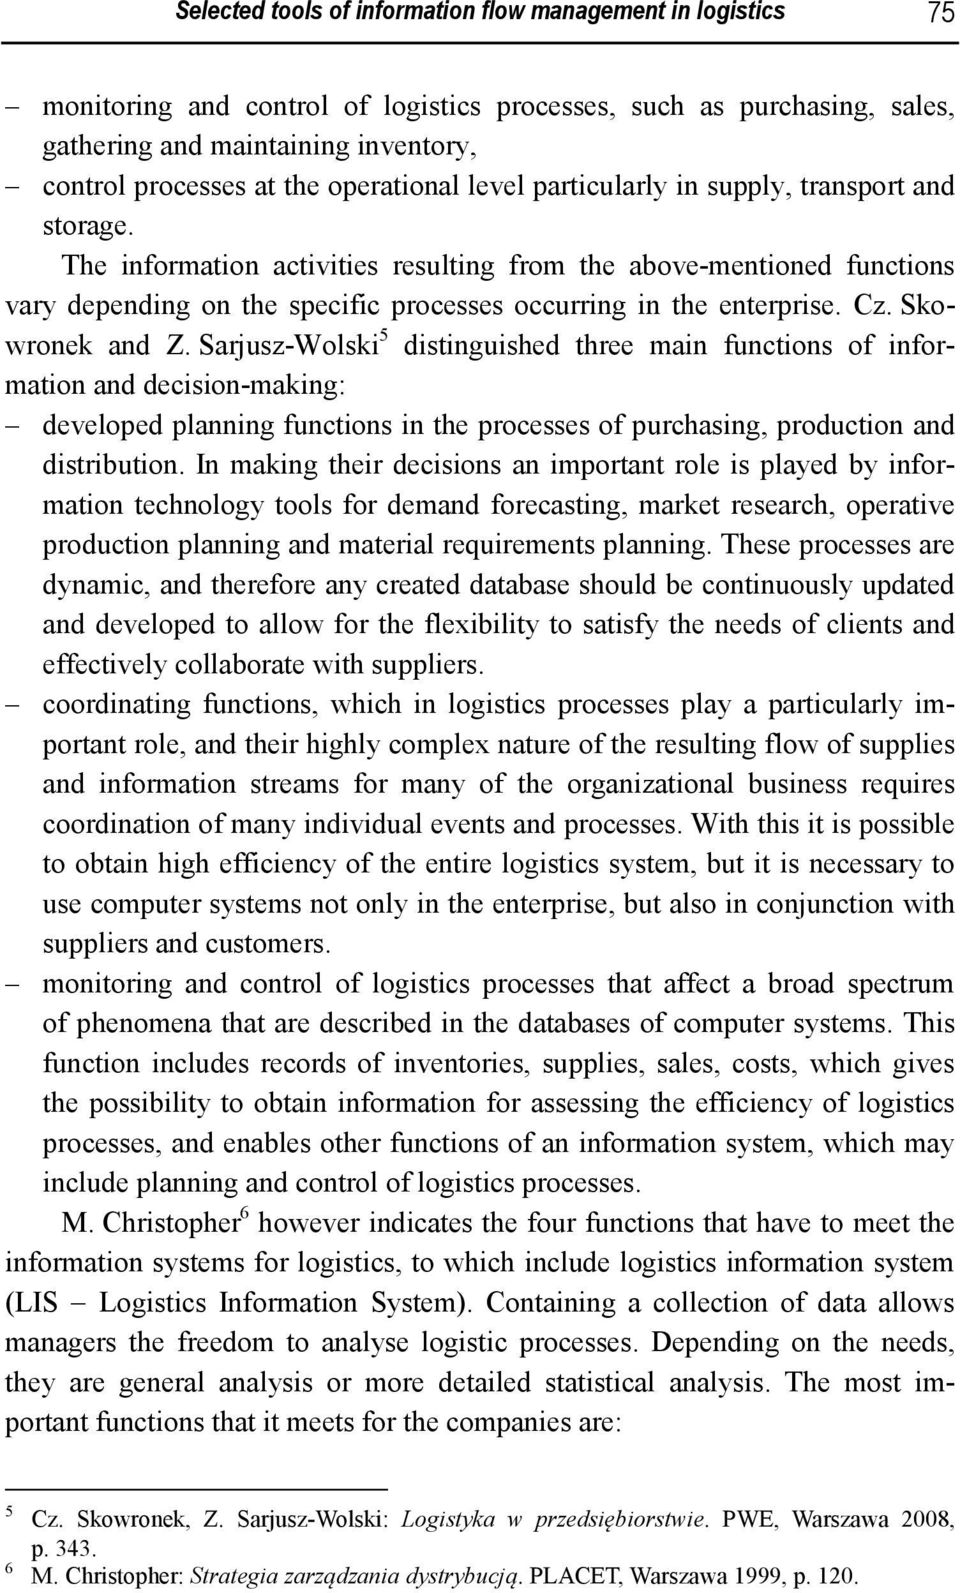 The information activities resulting from the above-mentioned functions vary depending on the specific processes occurring in the enterprise. Cz. Skowronek and Z.